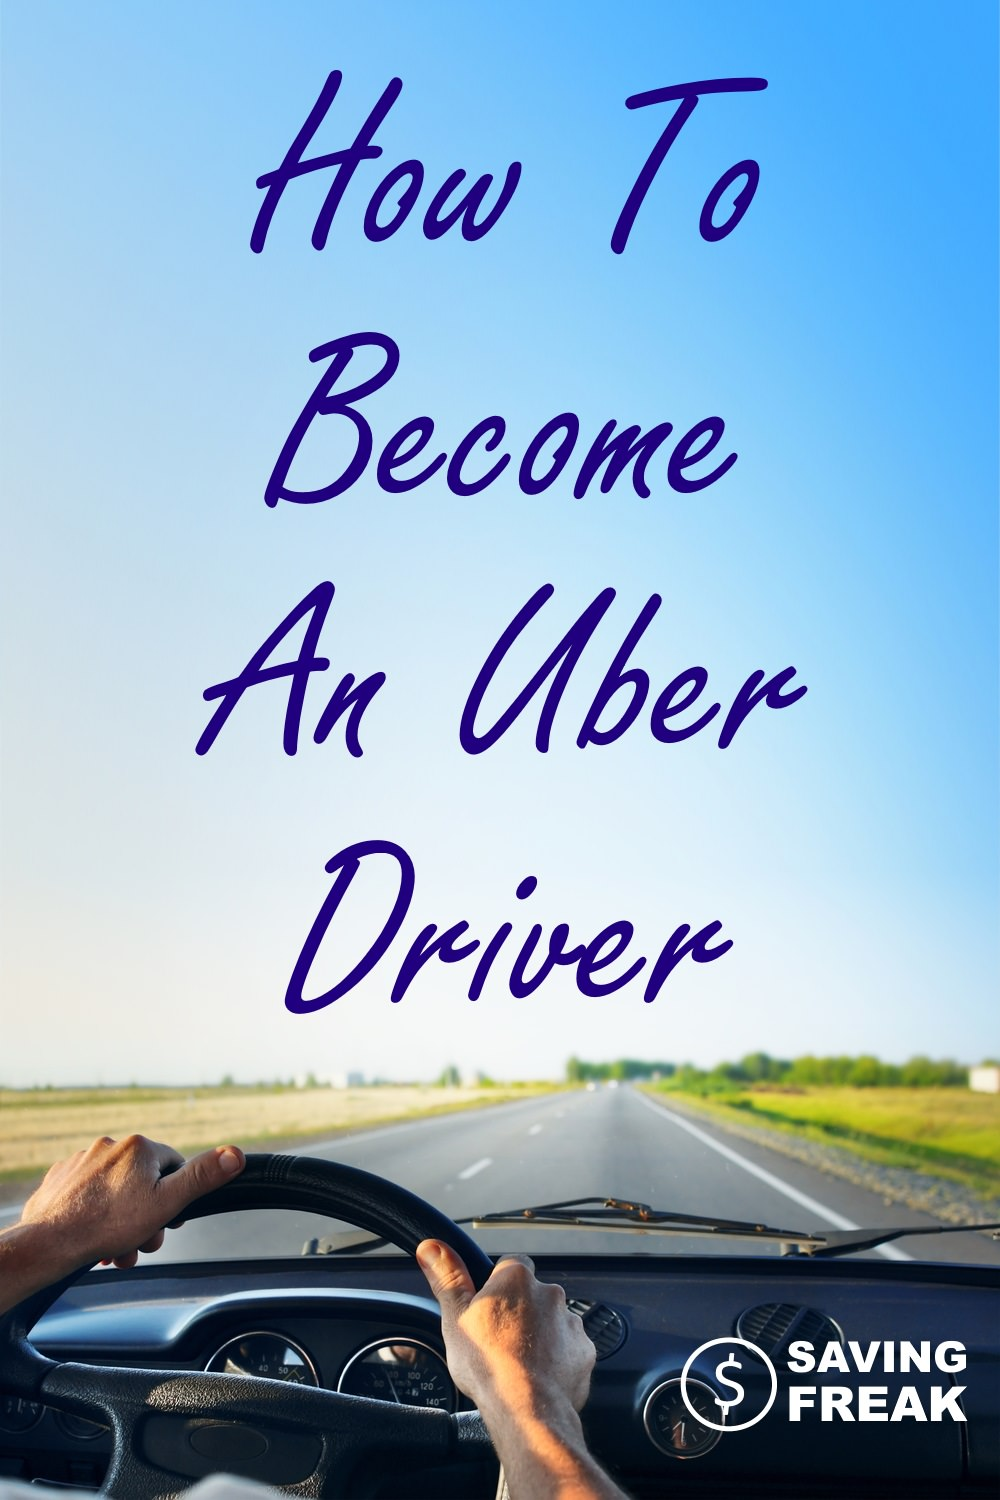 Great information on how to become an uber driver and make money on the side.